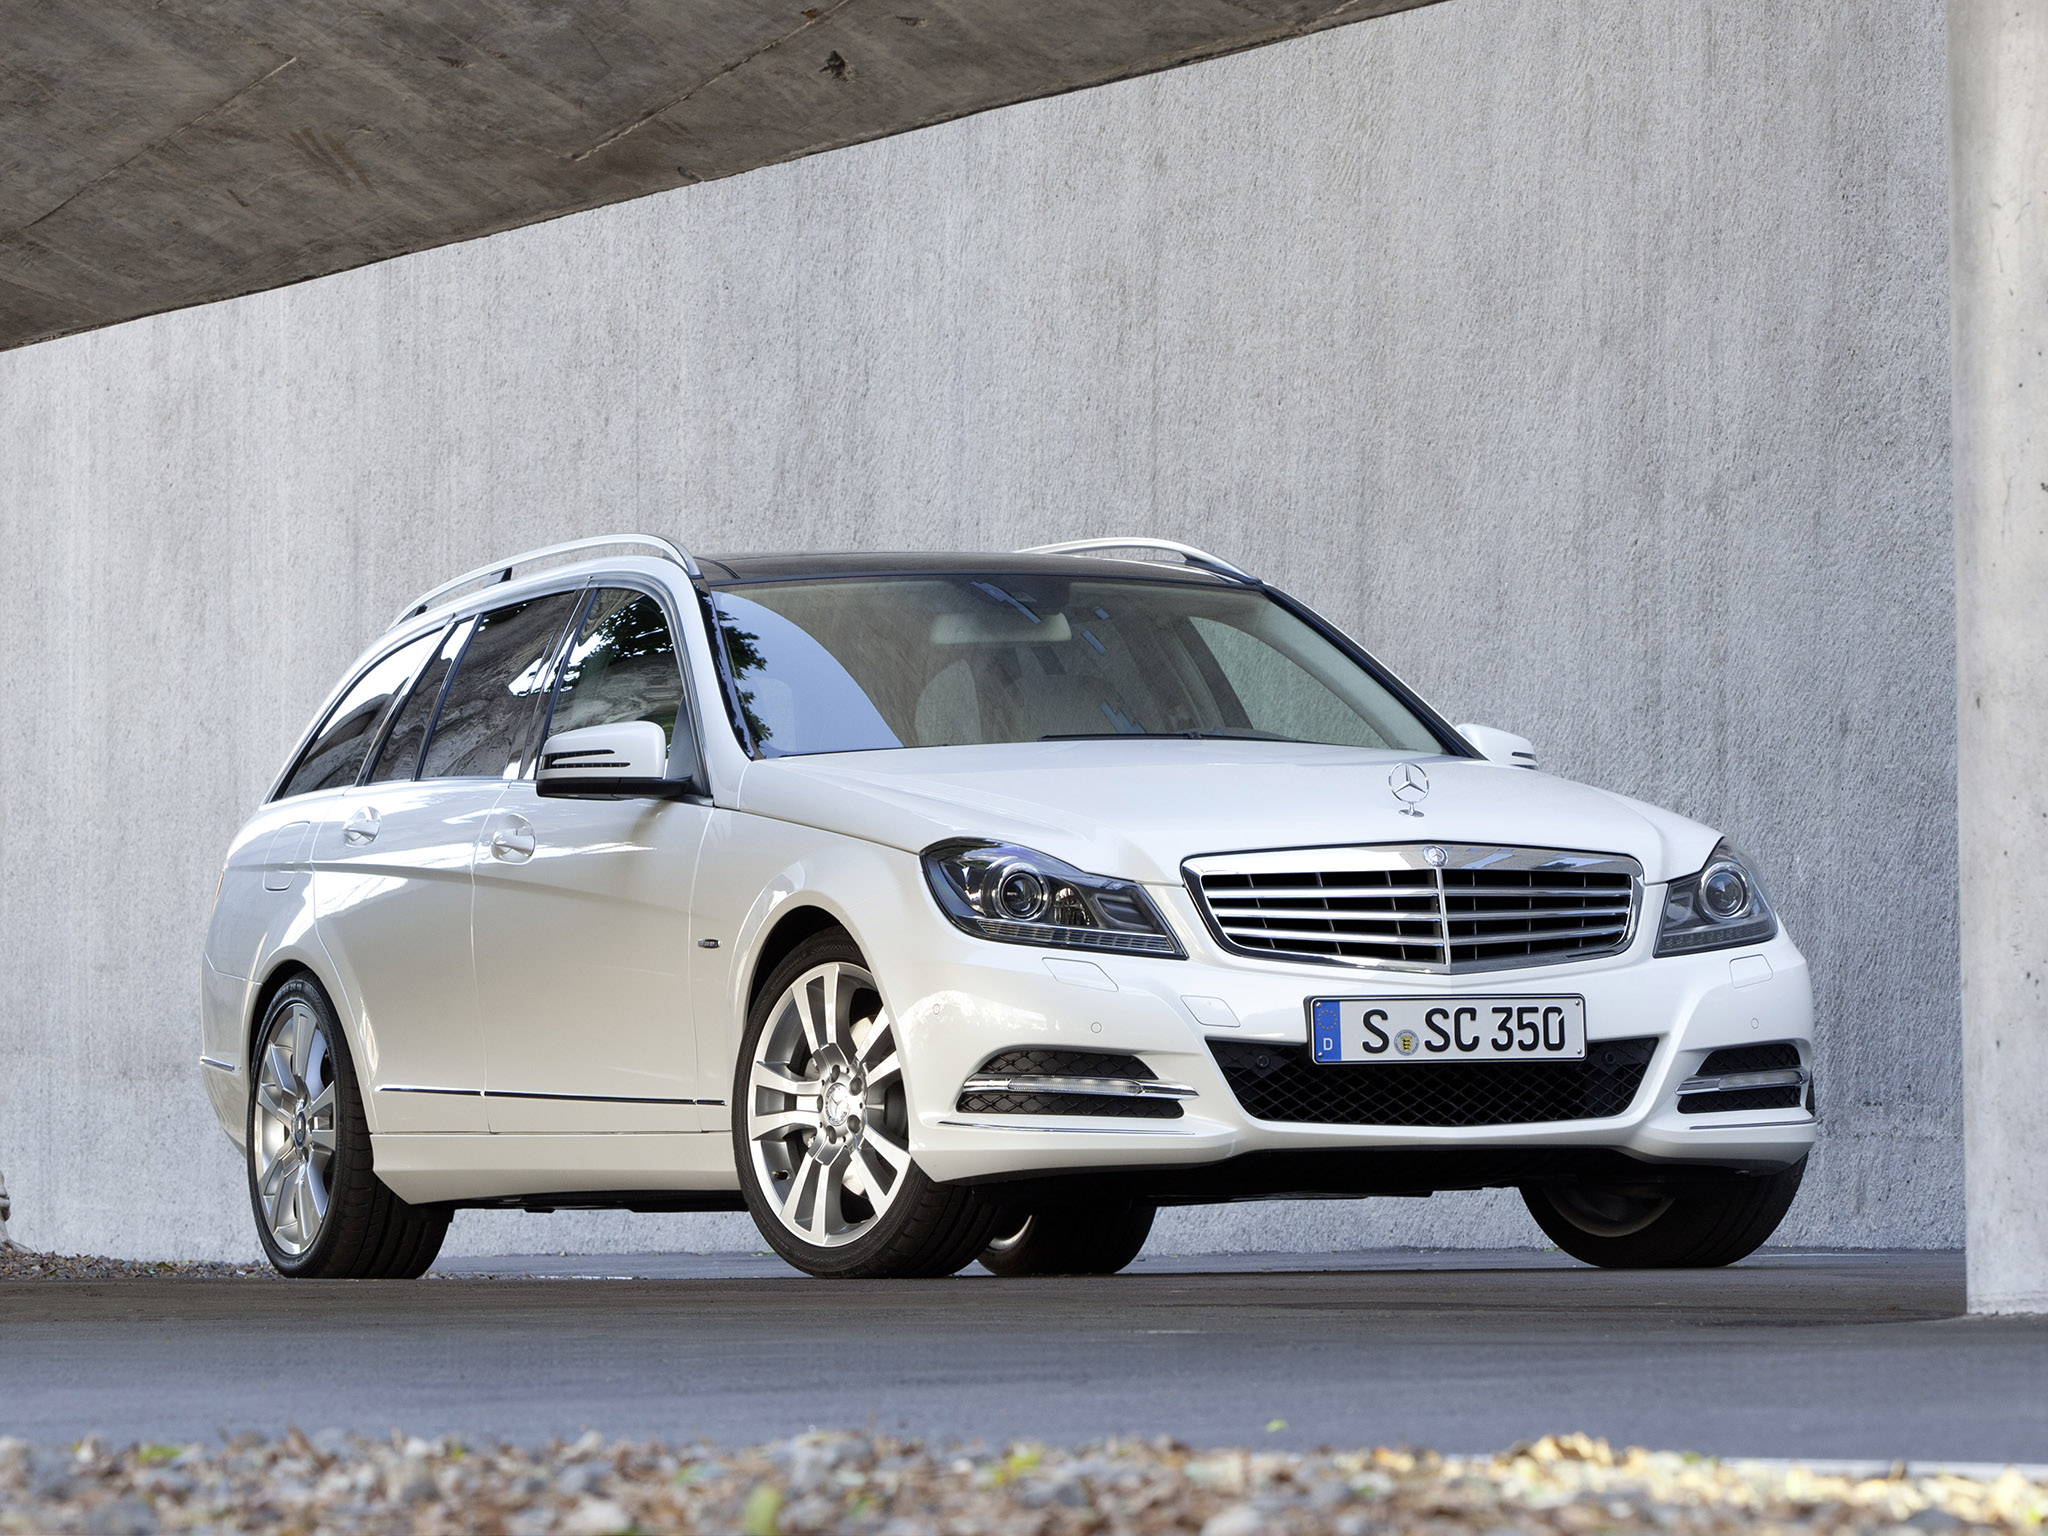 mercedes c klasse c350 cdi estate 2011 mercedes c klasse c350 cdi estate 2011 photo 10 car in. Black Bedroom Furniture Sets. Home Design Ideas